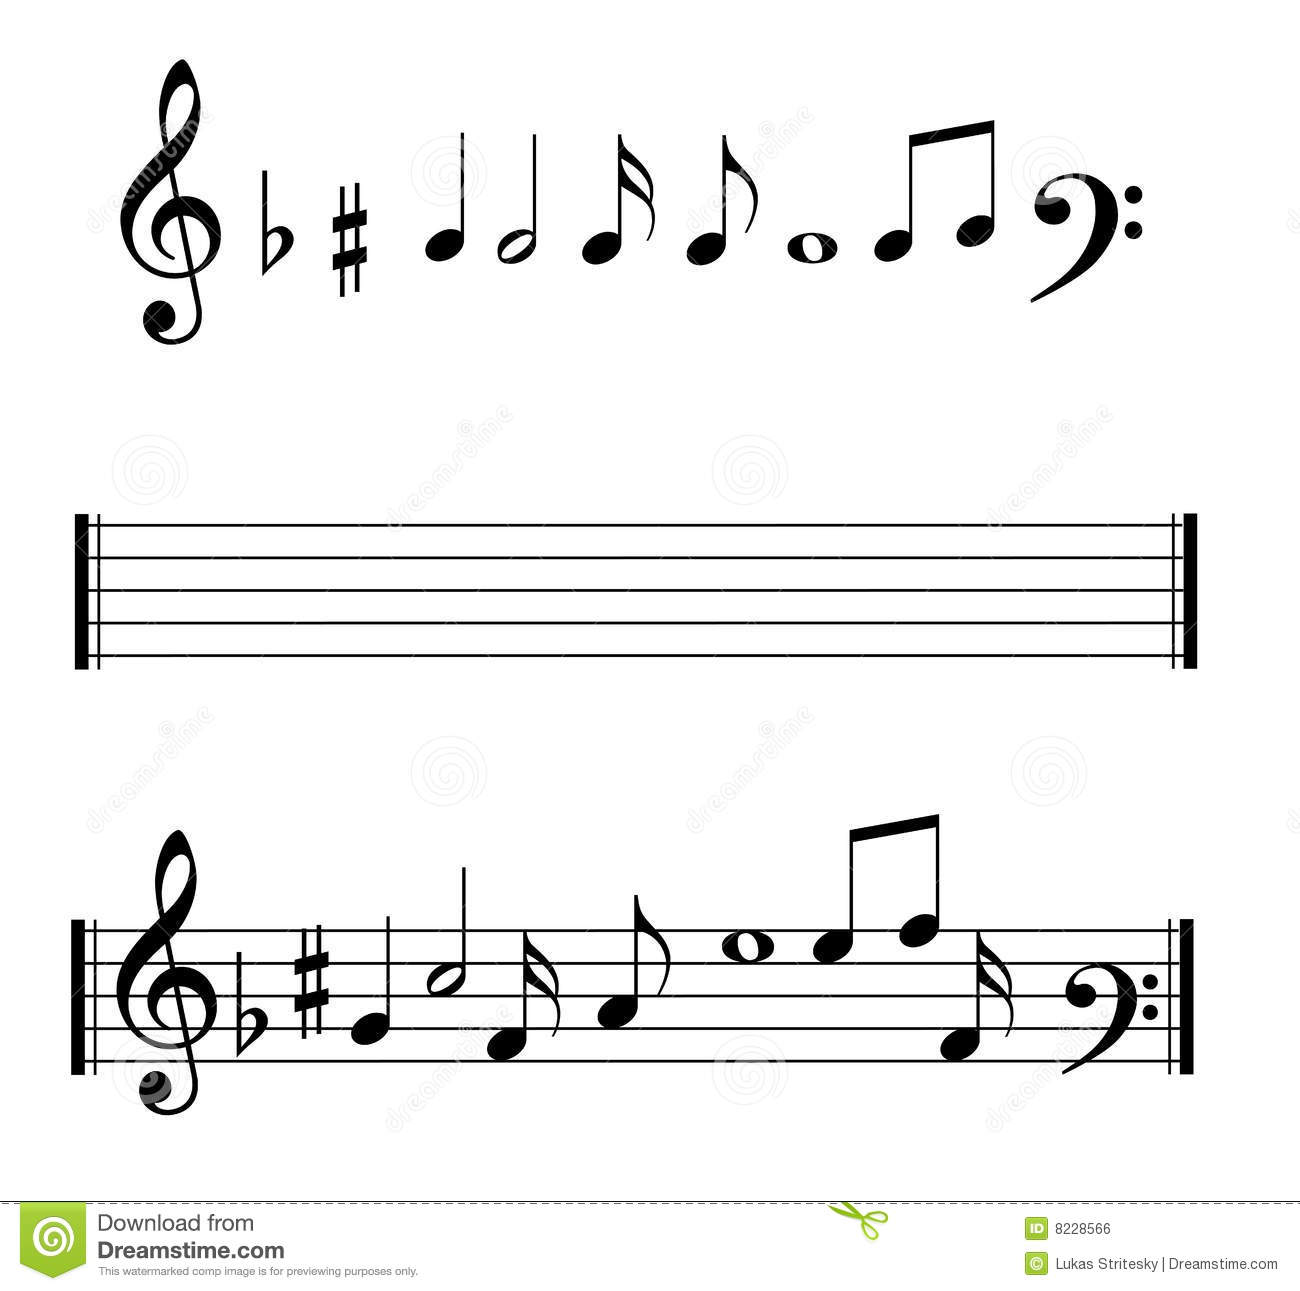 Musical Notes Symbols Set Stock Vector Illustration Of Clef 8228566